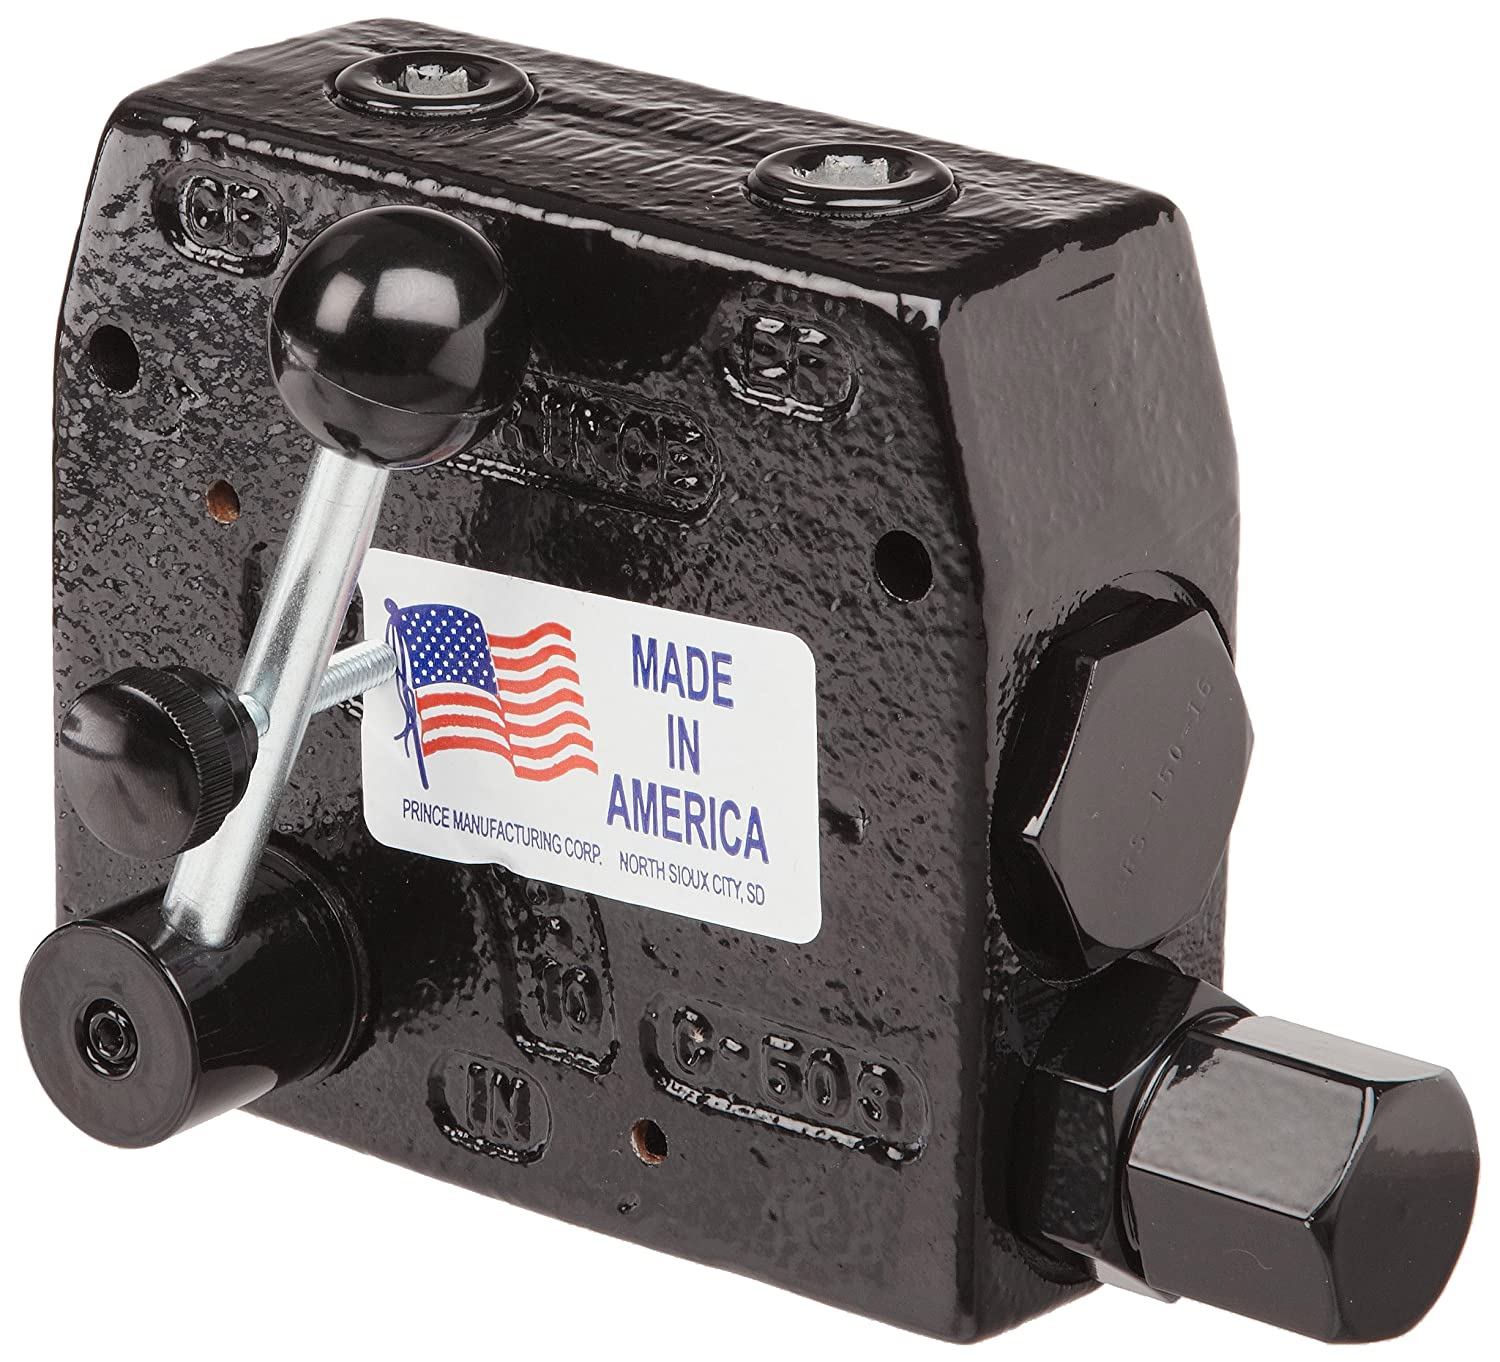 Prince rdrs 150 16 flow control valve adjustable pressure relief prince rdrs 150 16 flow control valve adjustable pressure relief cast iron 3000 psi 0 16 gpm 12 nptf hydraulic directional control valves nvjuhfo Choice Image